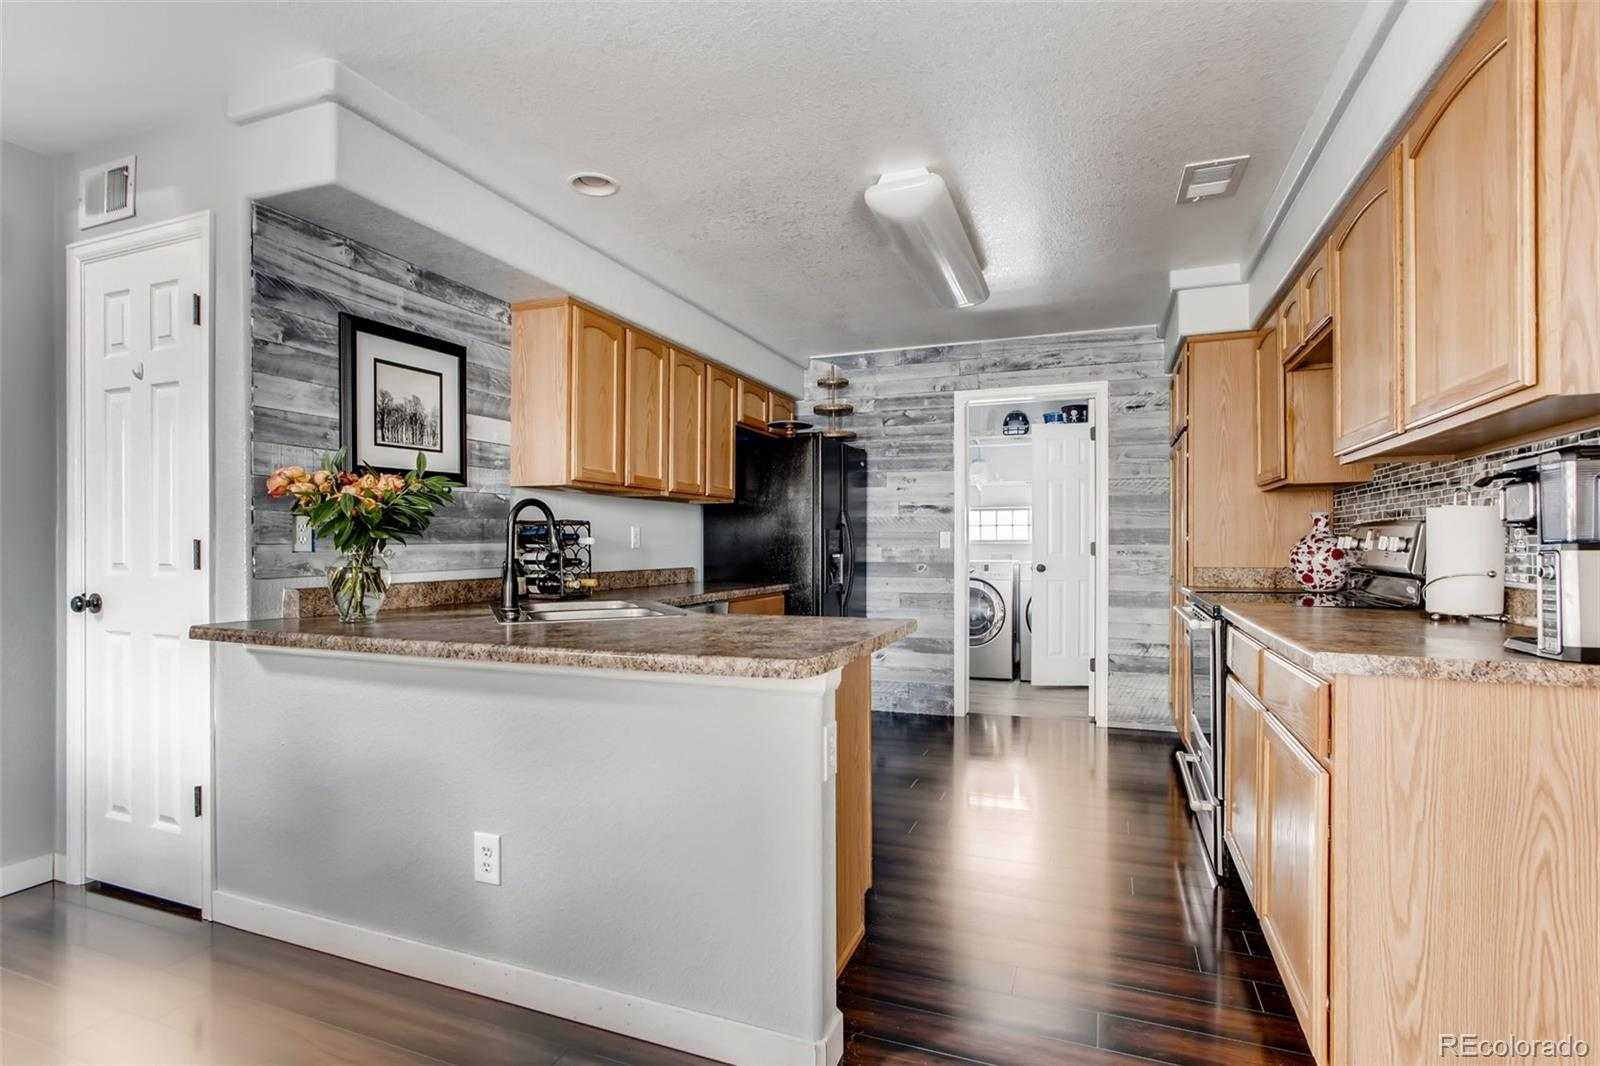 MLS# 3131128 - 8 - 20000 Mitchell Place #64, Denver, CO 80249